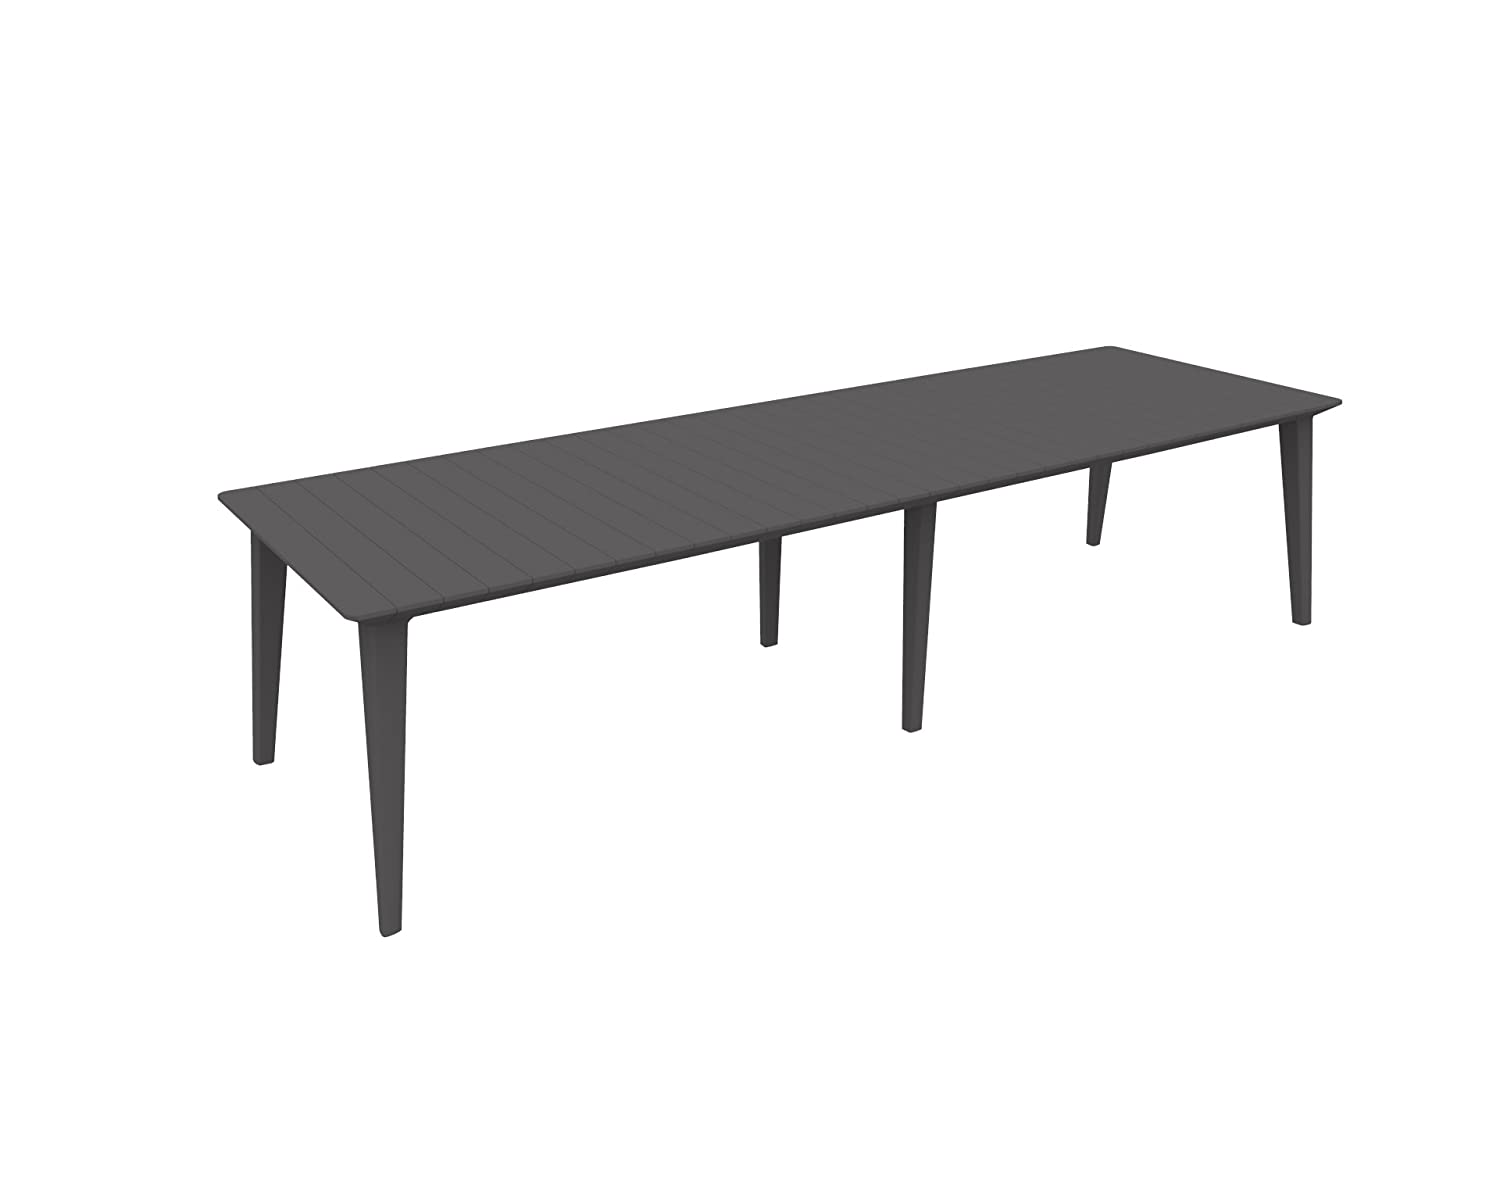 Allibert by Keter 157 x 98 x 74 cm Lima Outdoor Garden Furniture 6 seater Dining Table - Graphite 226499